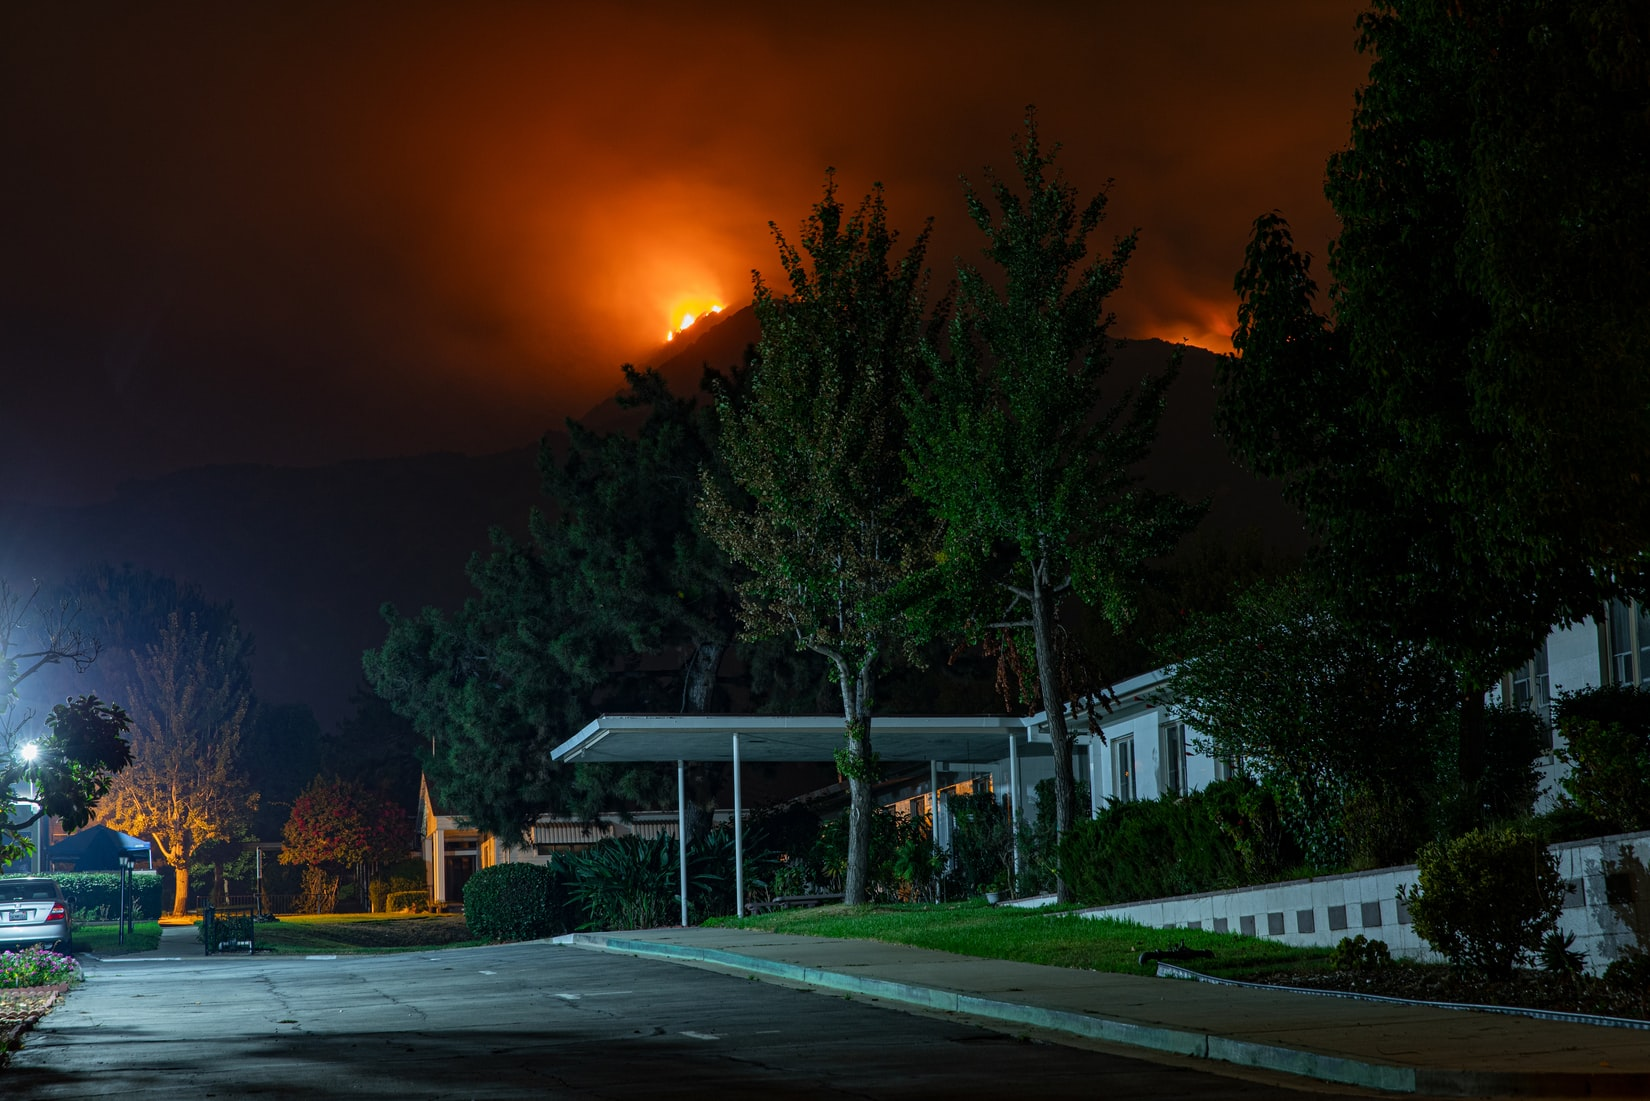 Neighbors Spread the Word to Slow the Destructive Spread of Fires